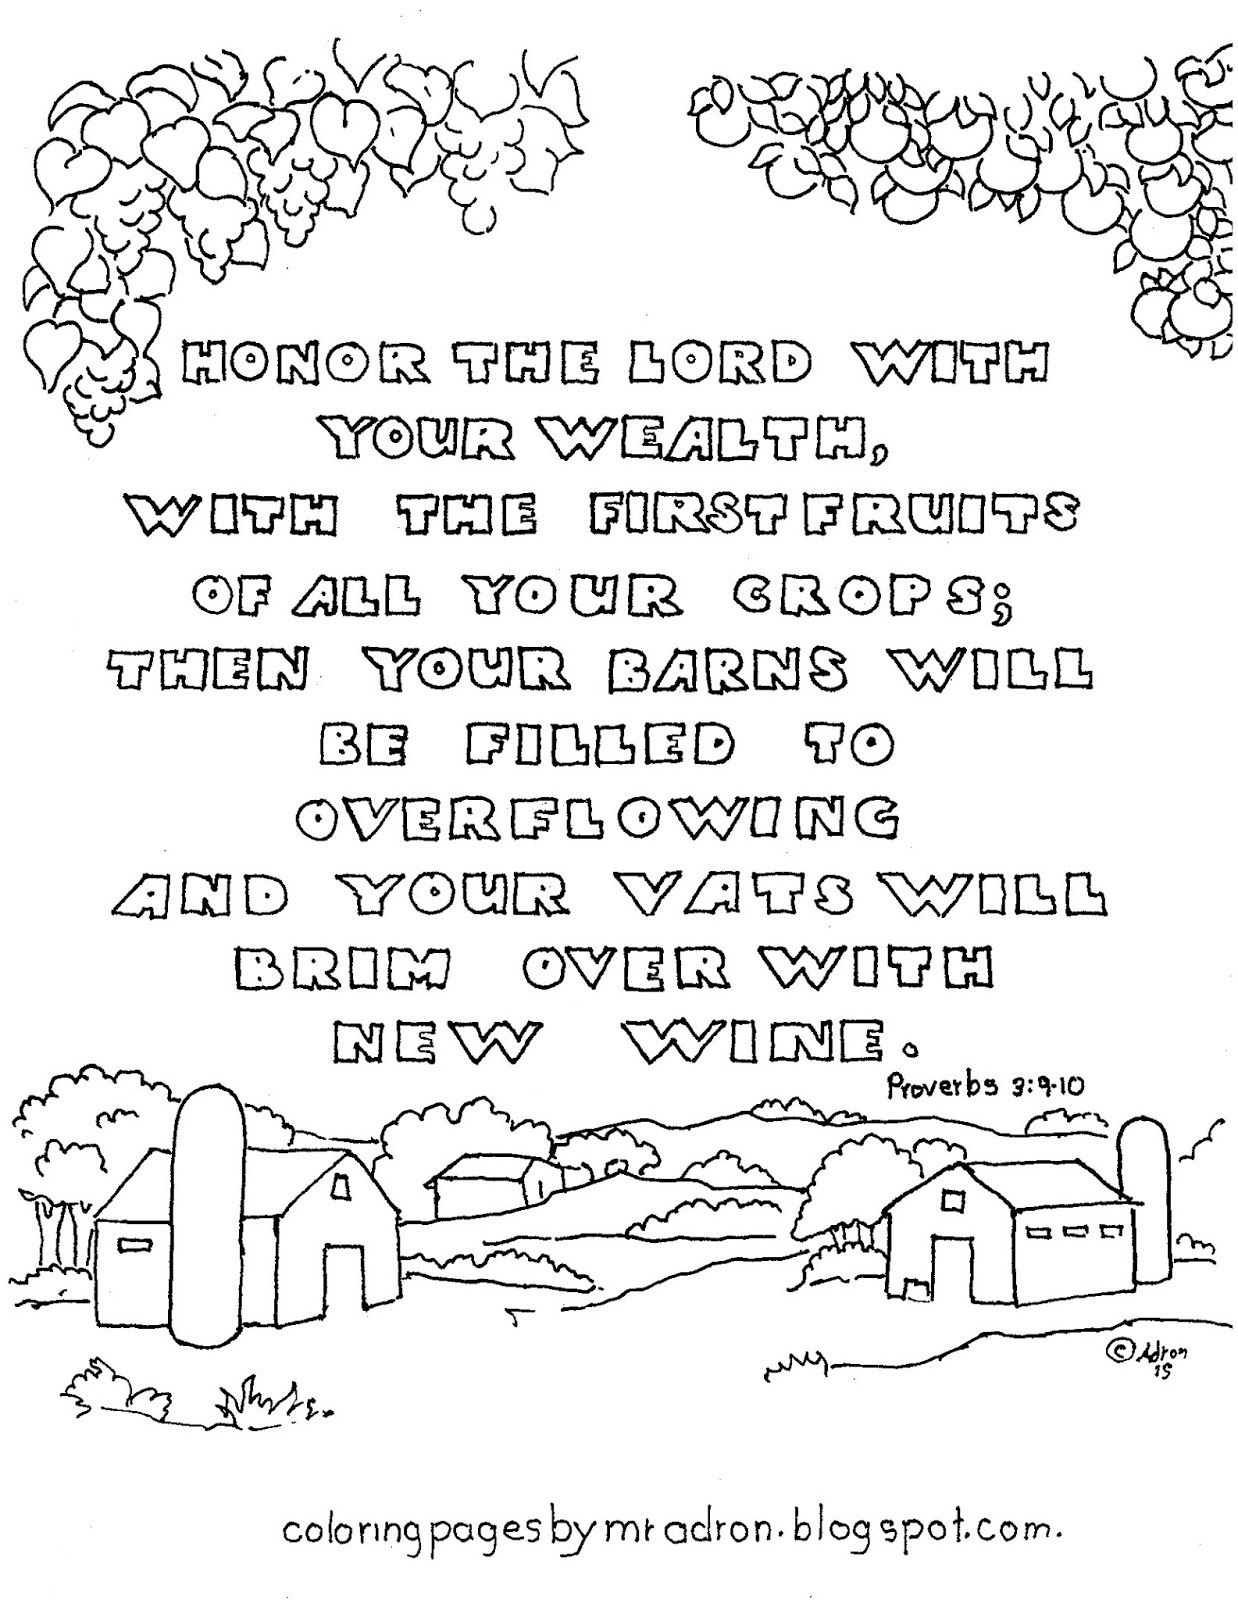 Coloring Pages For Kids By Mr Adron Proverbs 3 9 10